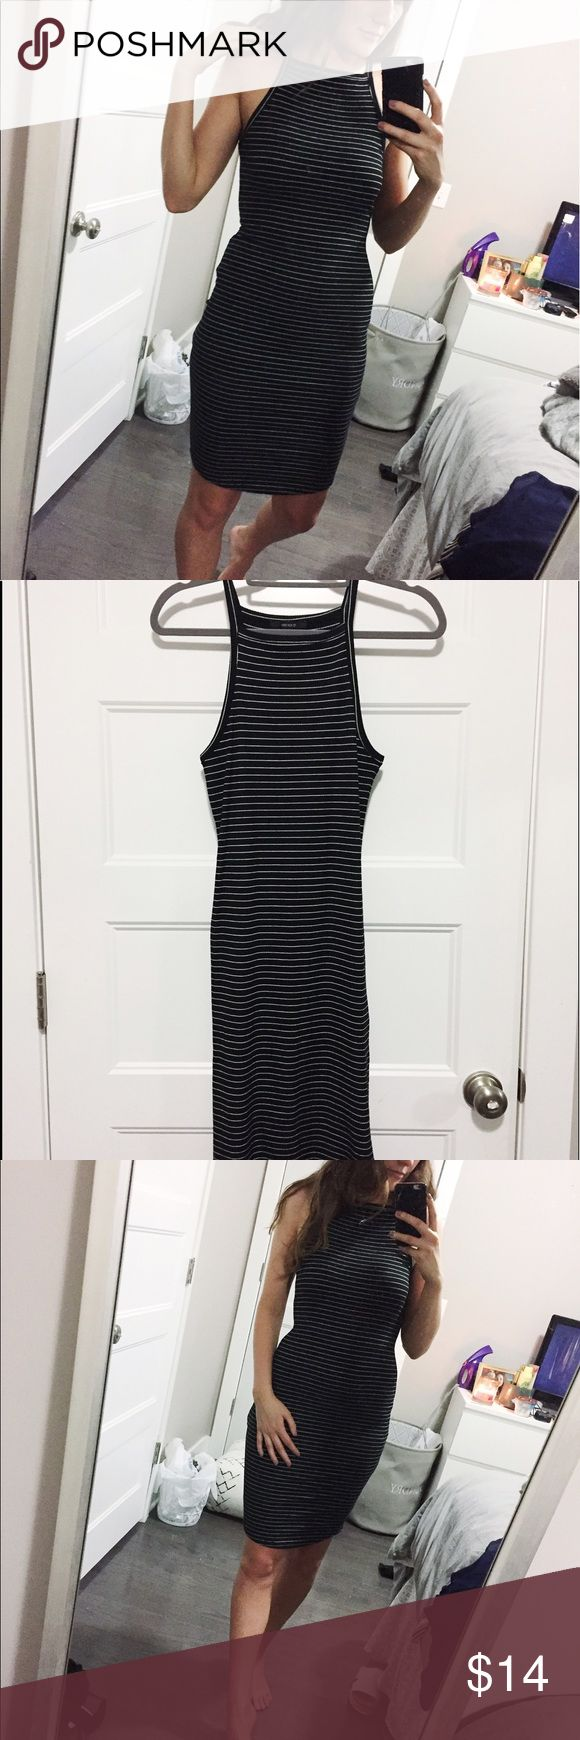 Knit going out dress Black and white stripped knit midi dress. Flattering neckline, perfect for a night out. Forever 21 Dresses Midi